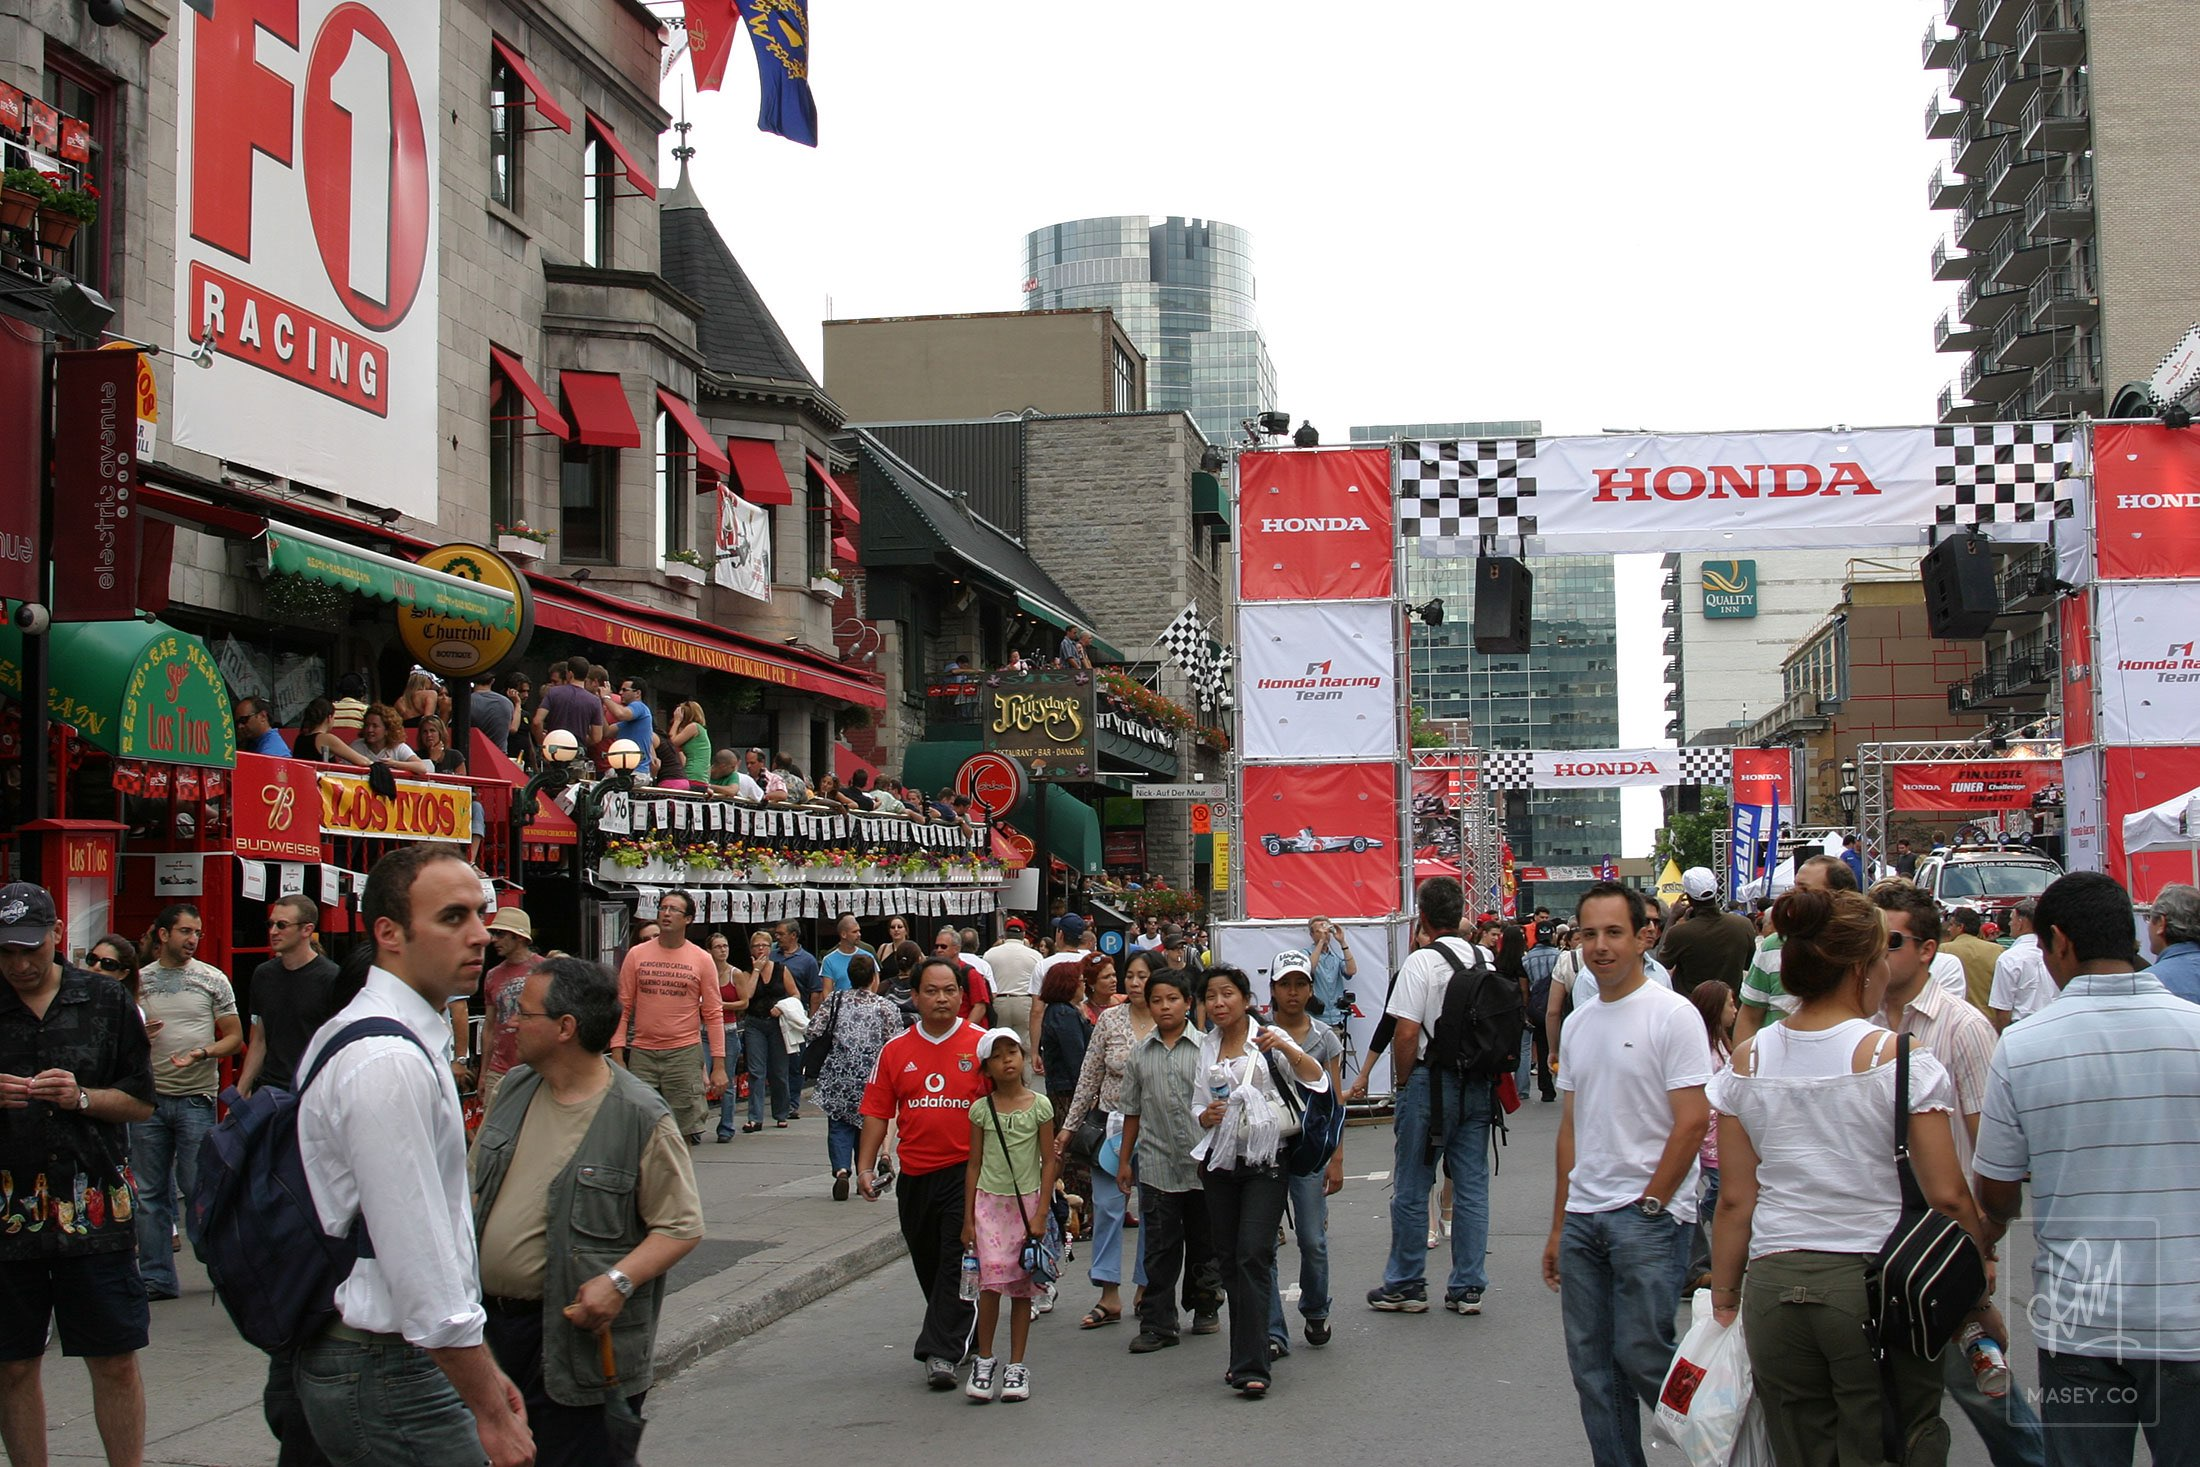 Montreal F1 Grand Prix festivities